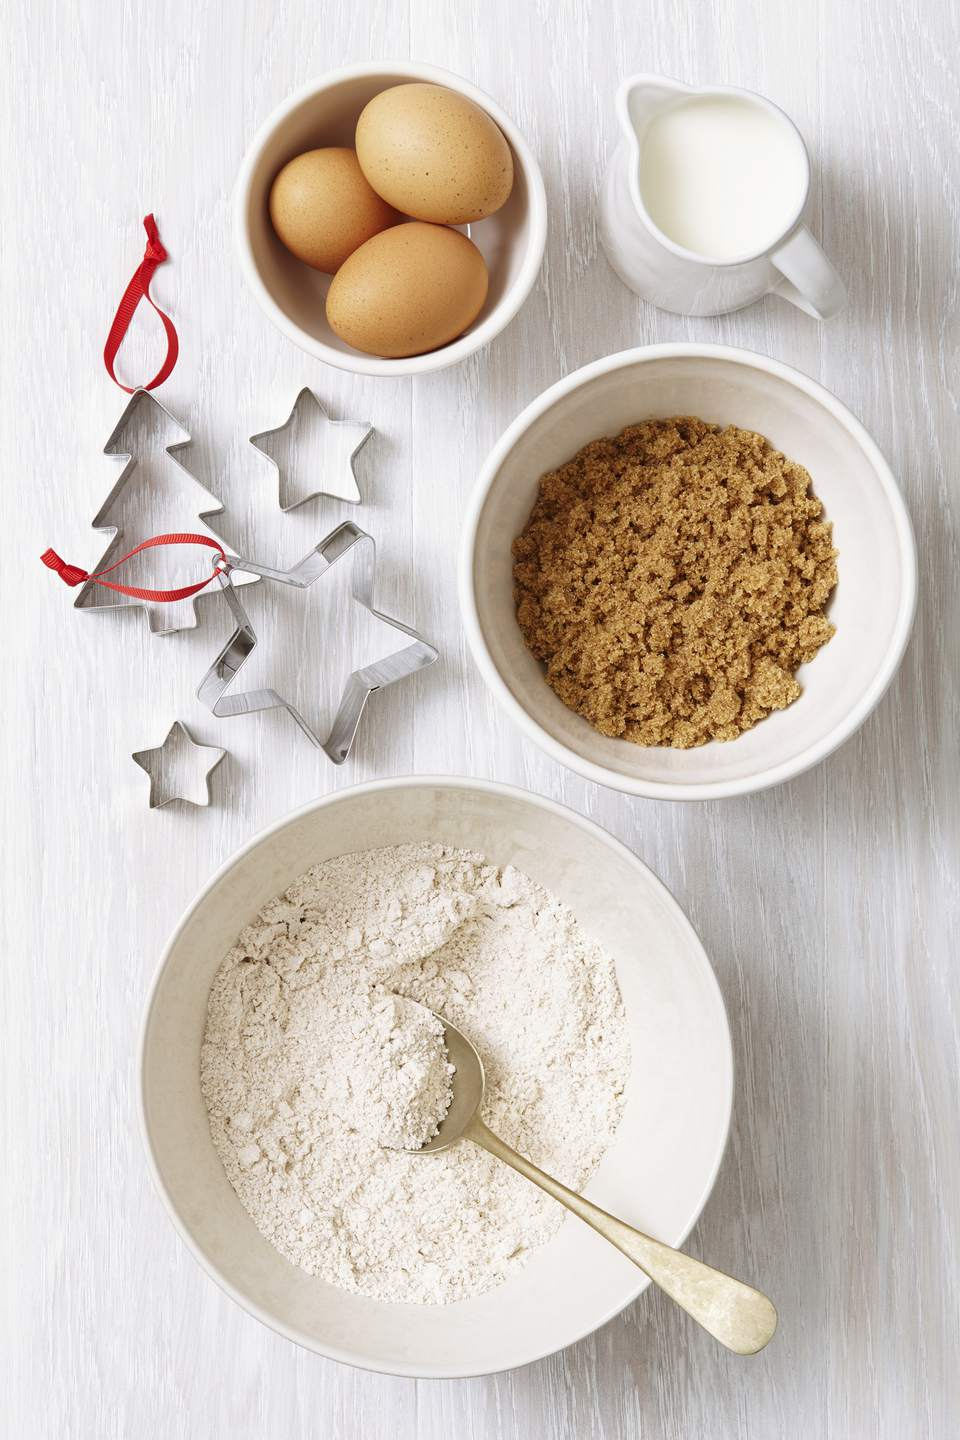 A set of holiday baking supplies